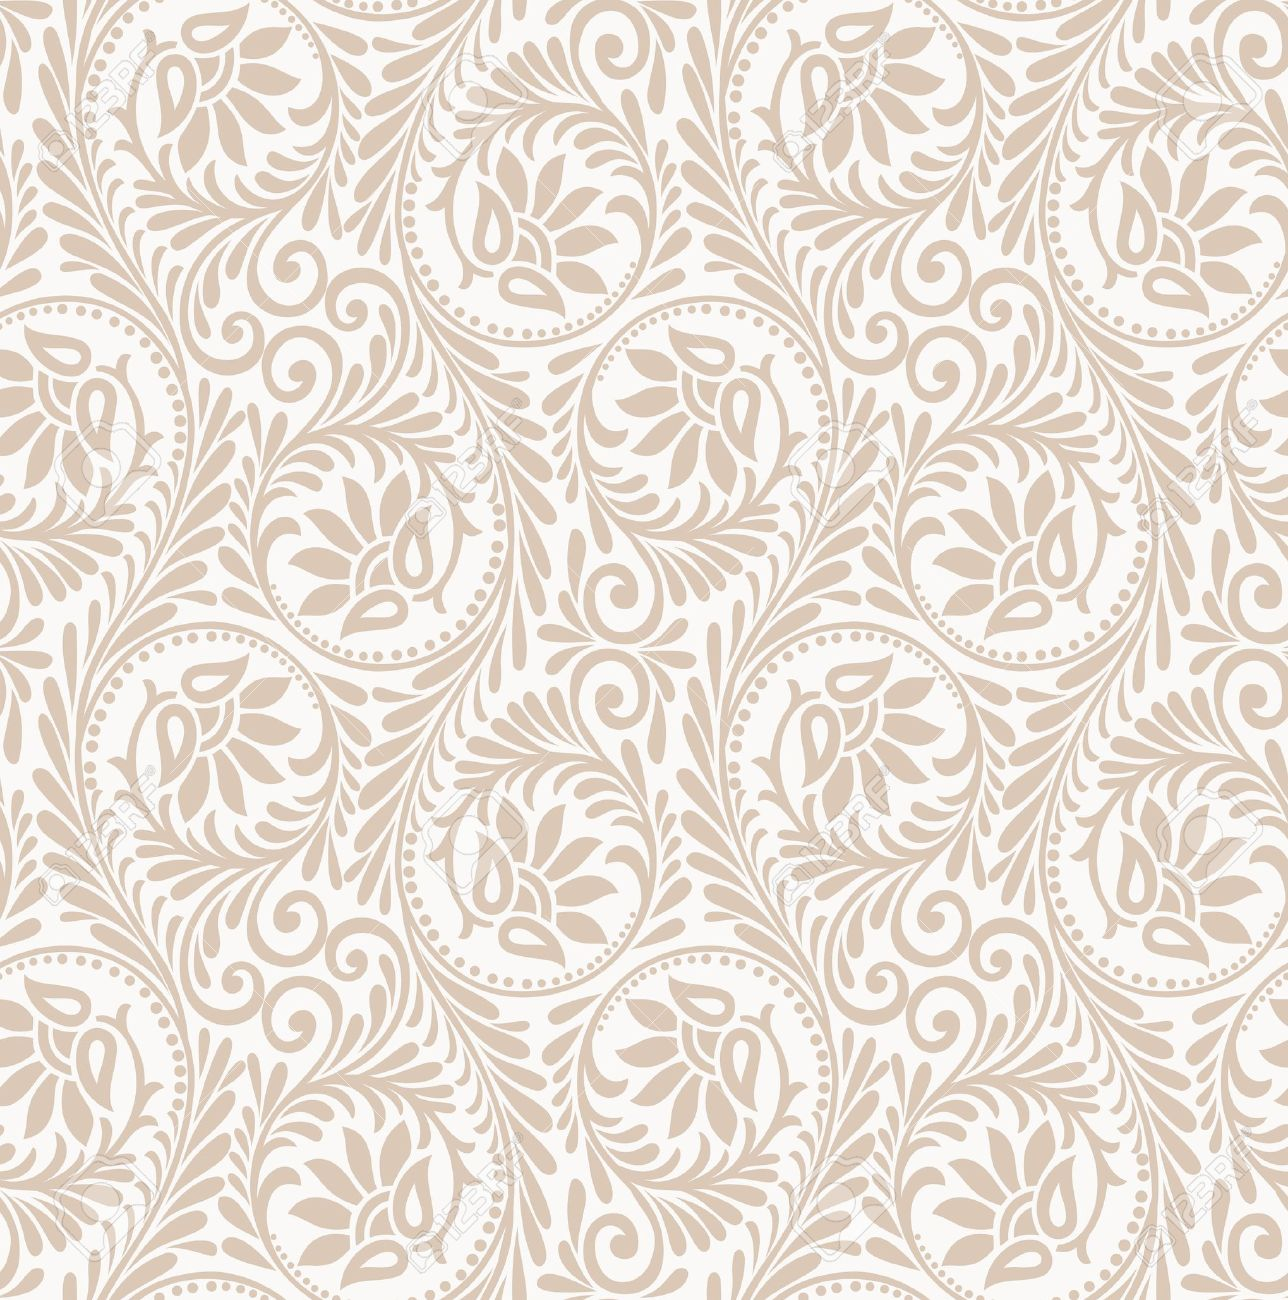 Floral Seamless Background Wallpaper Royalty Free Cliparts